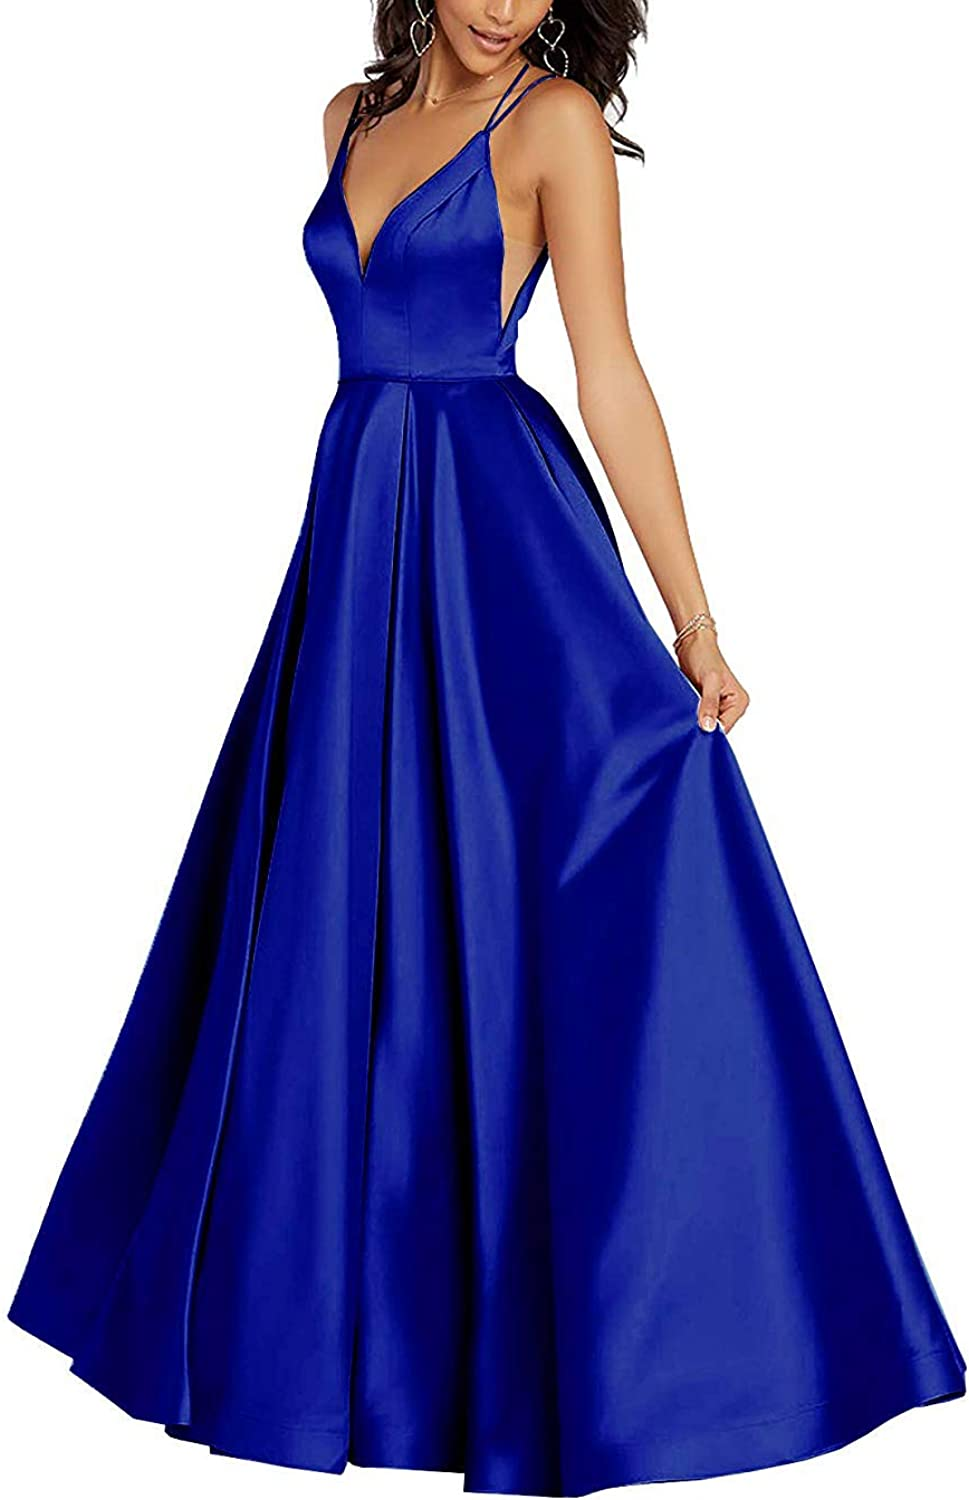 Tmaoomo Satin VNeck Bodice Prom Dresses Long for Women Evening Ball Gowns with Pockets